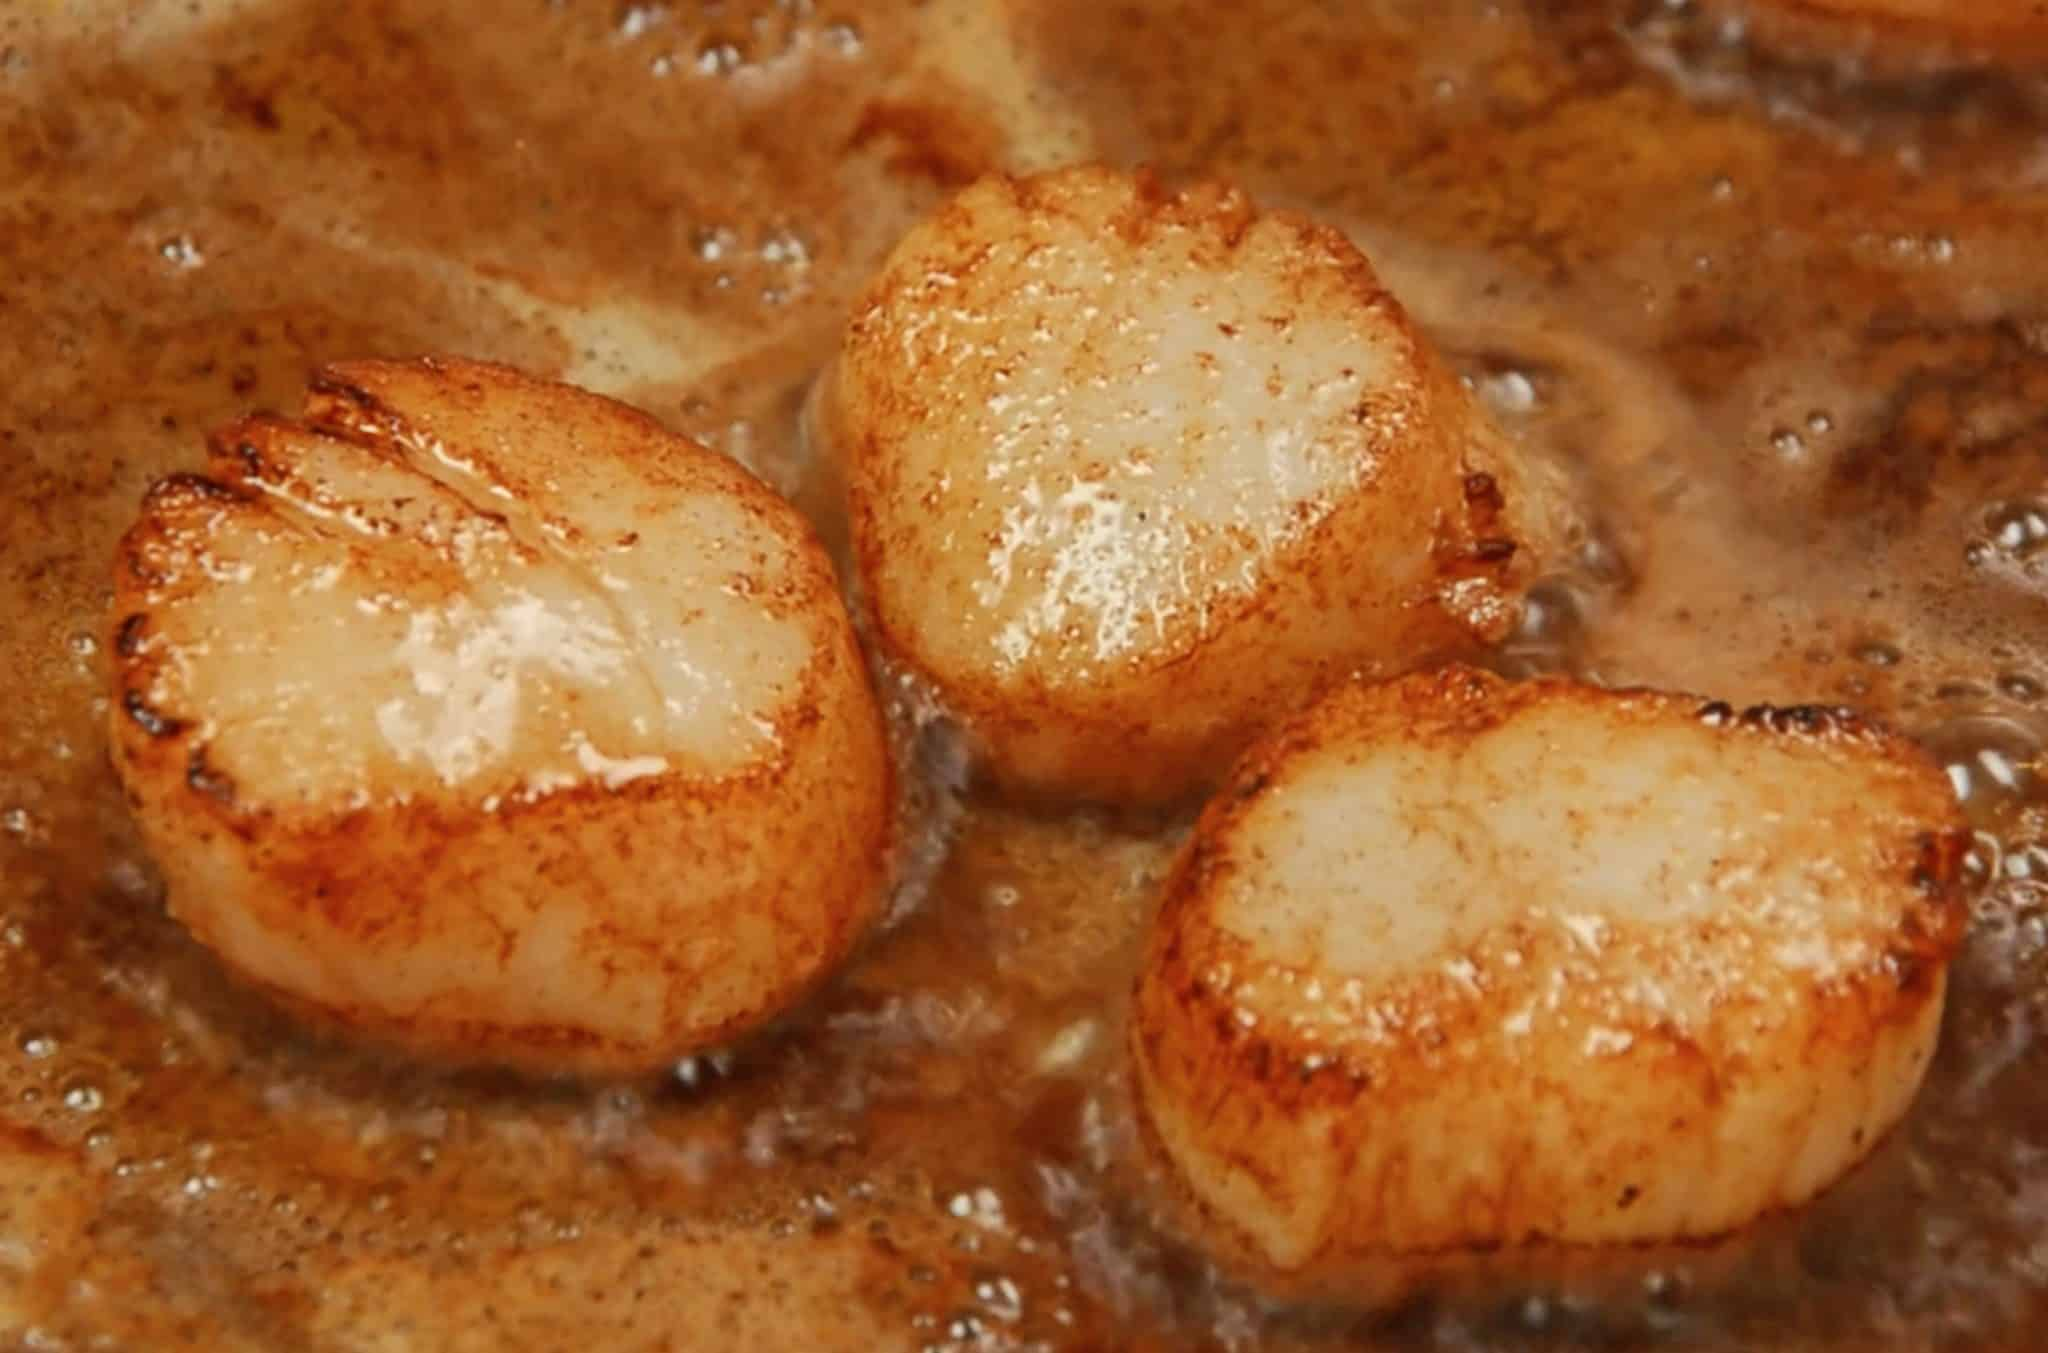 Pan Seared Scallops at home are easy to make. Learn how to prevent your scallops from sticking and get restaurant quality crust every time! #howtosearscallops #howtocookscallops www.savoryexperiments.com